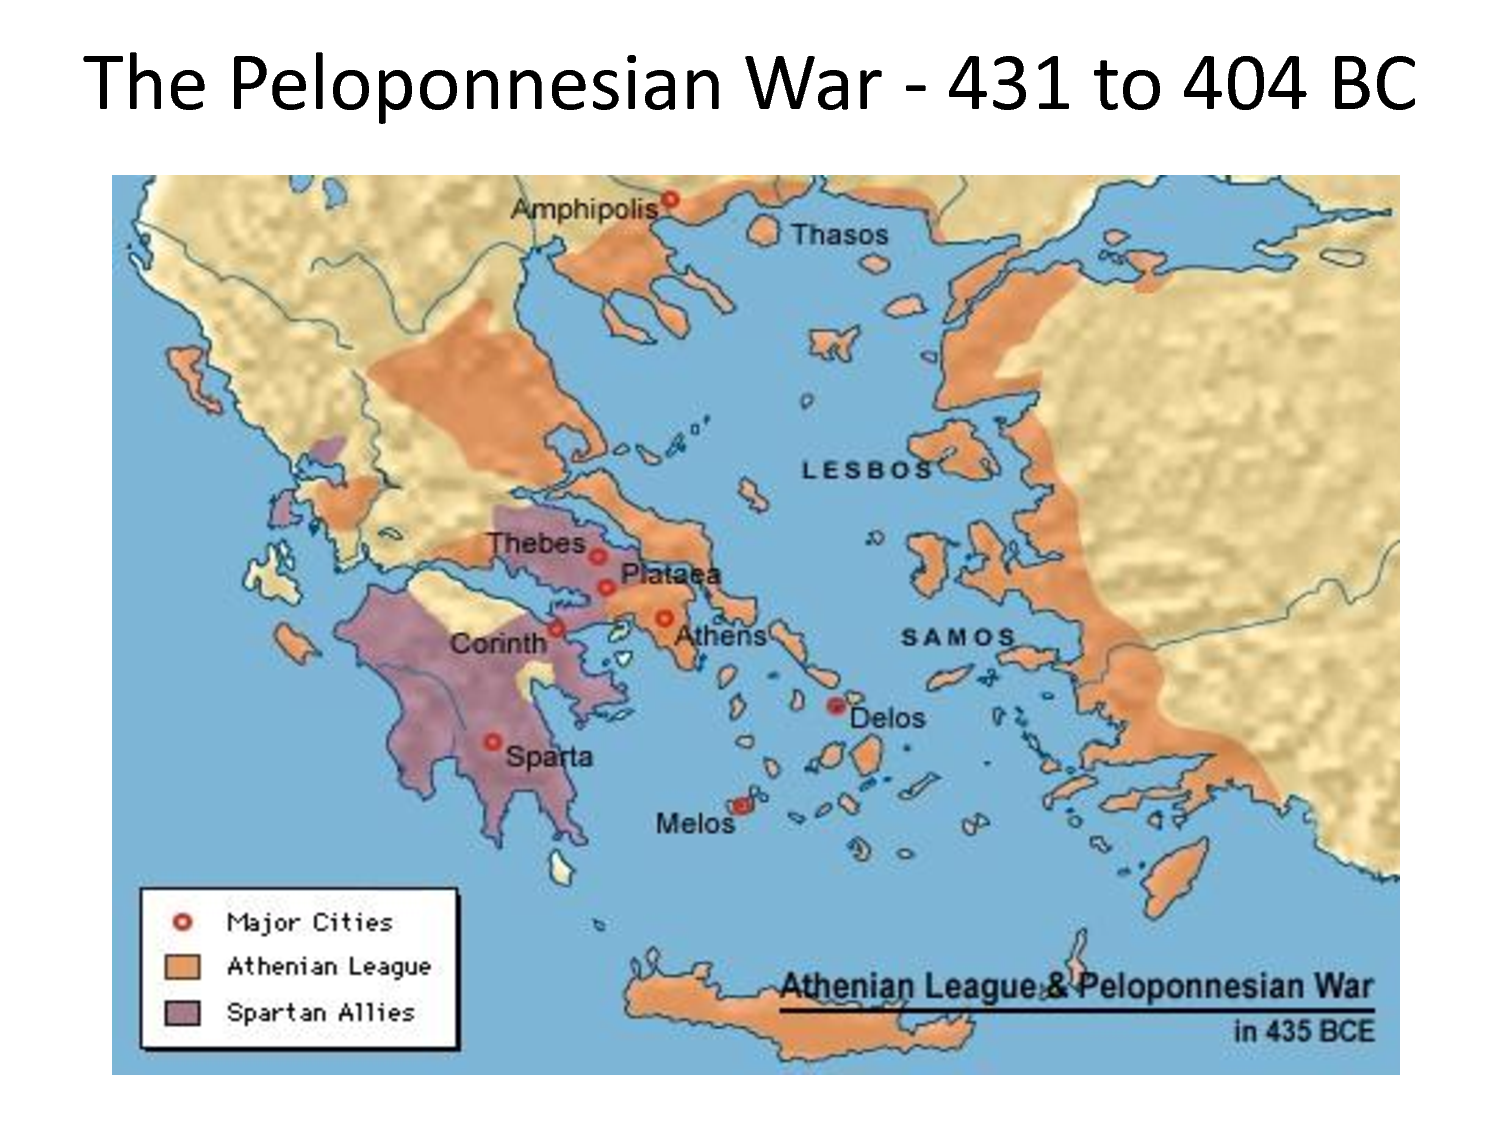 an introduction to the history of the peloponnesian war History of the peloponnesian war summary & study guide includes detailed chapter summaries and analysis, quotes, character descriptions, themes, and more.